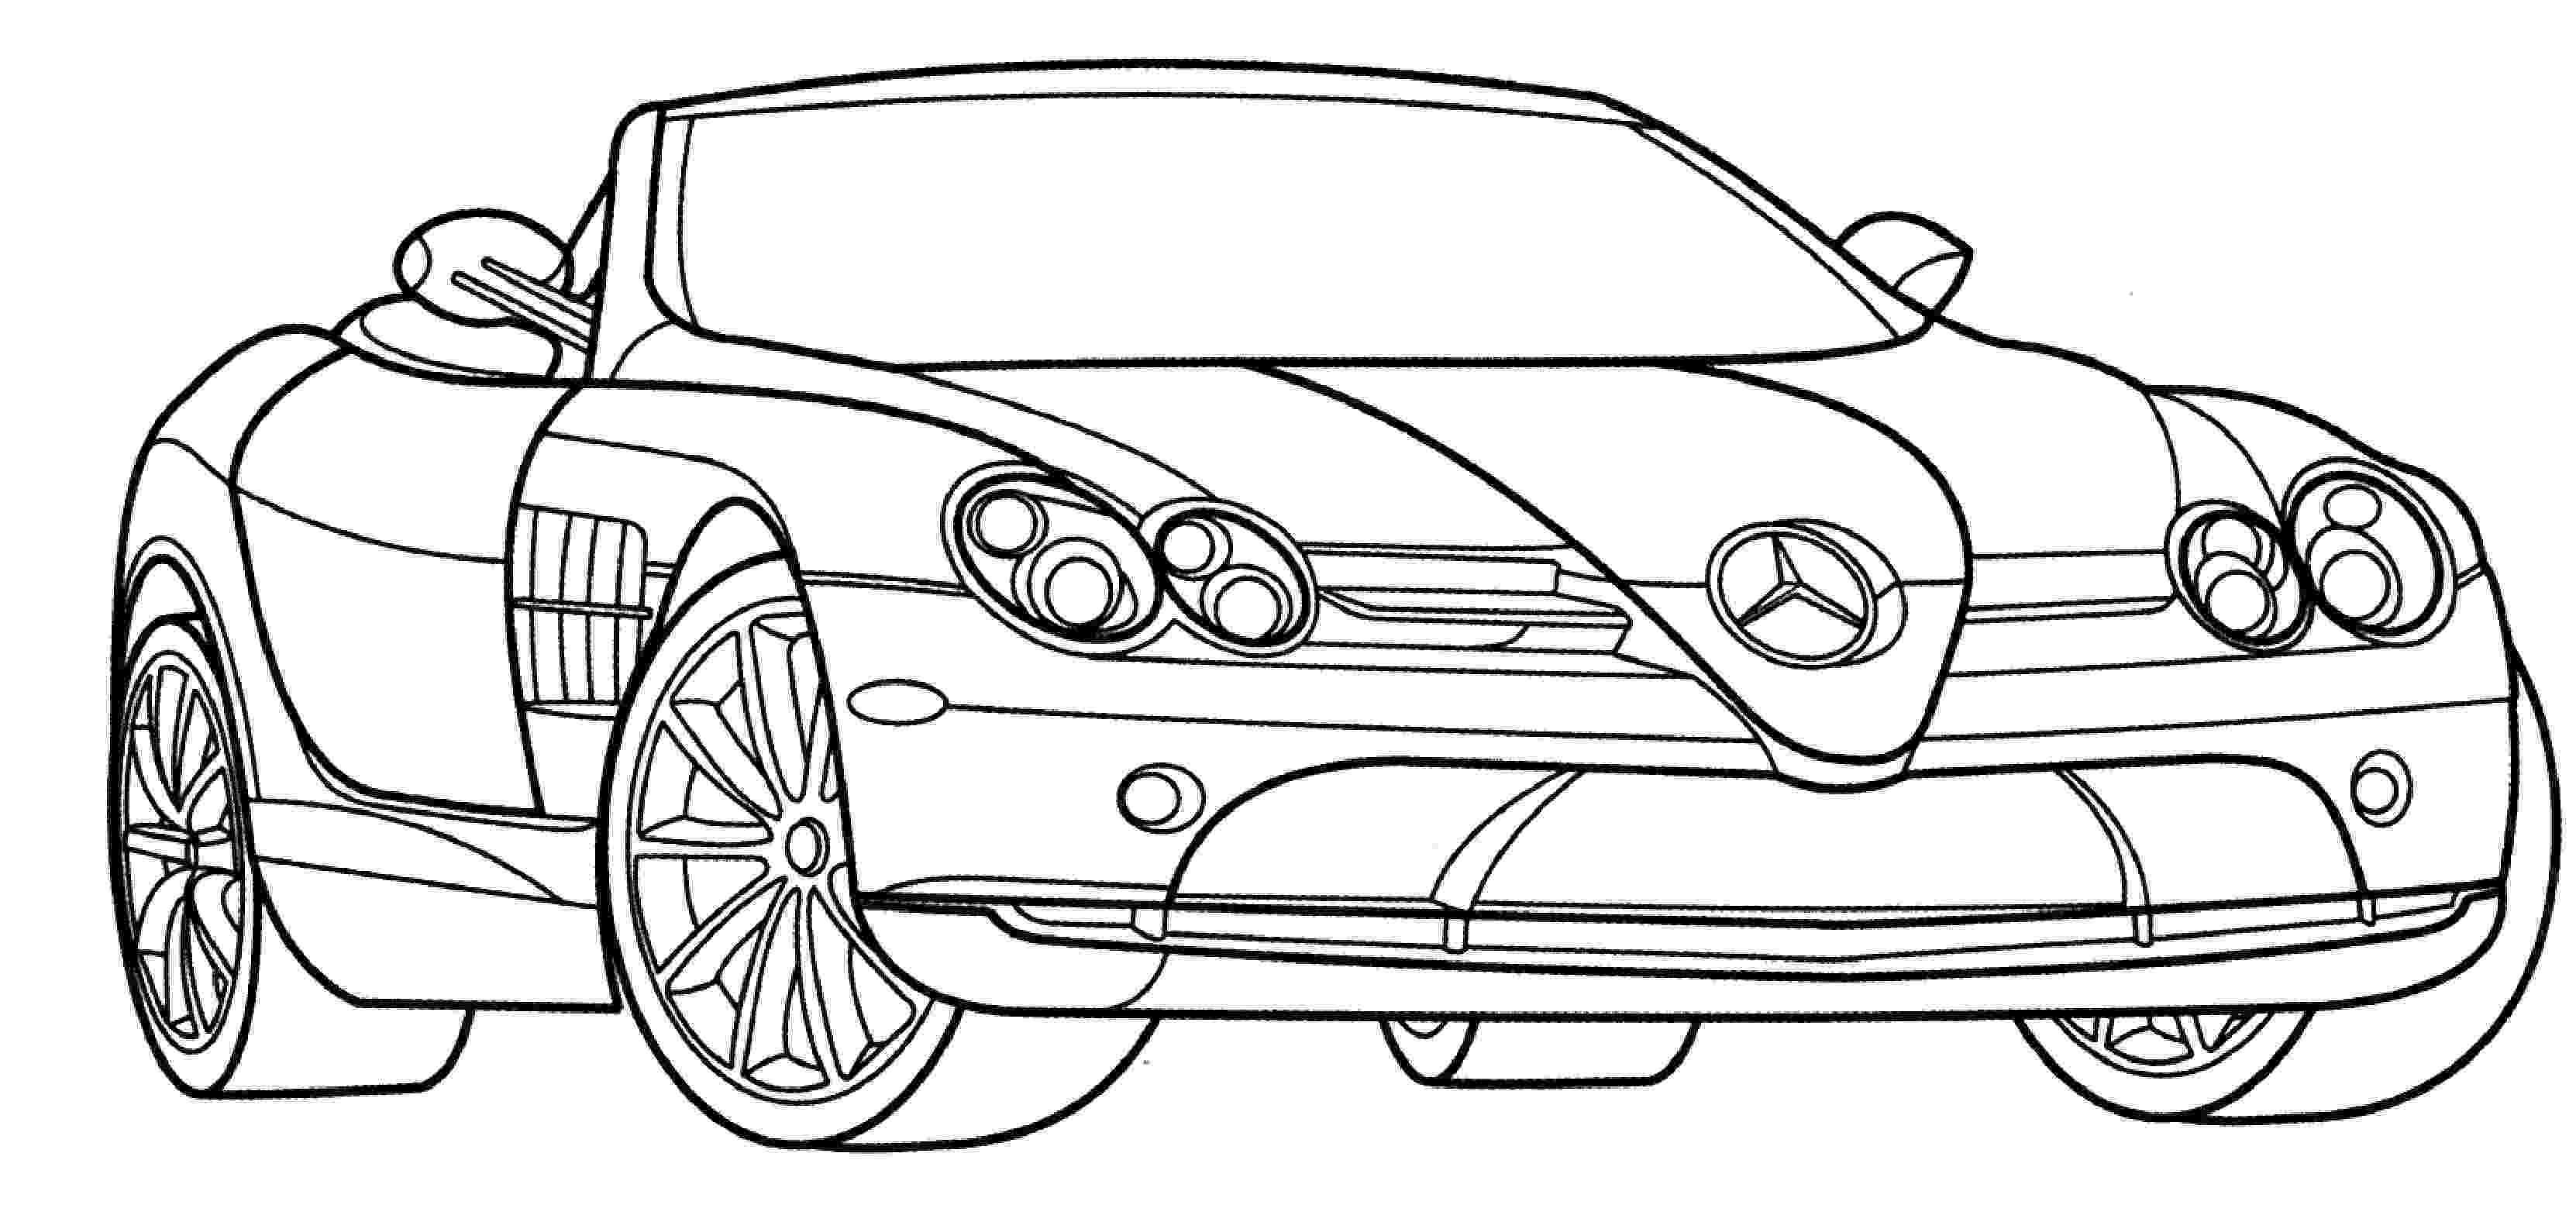 coloring pages sports cars free printable car coloring pages for kids art hearty cars pages coloring sports